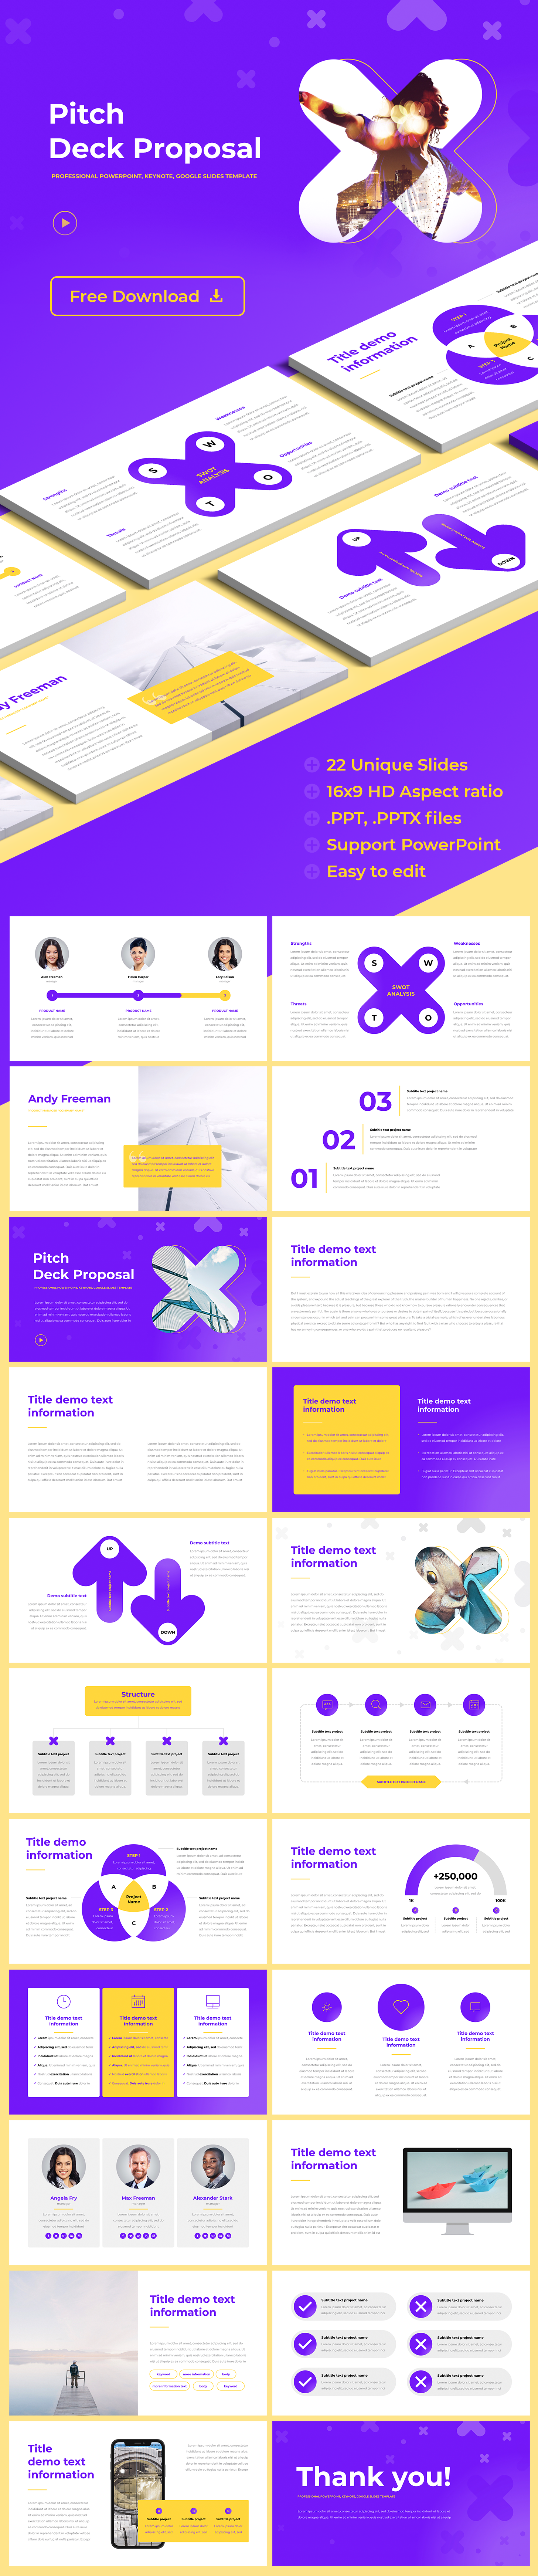 pitch deck ppt free template hislide io download now